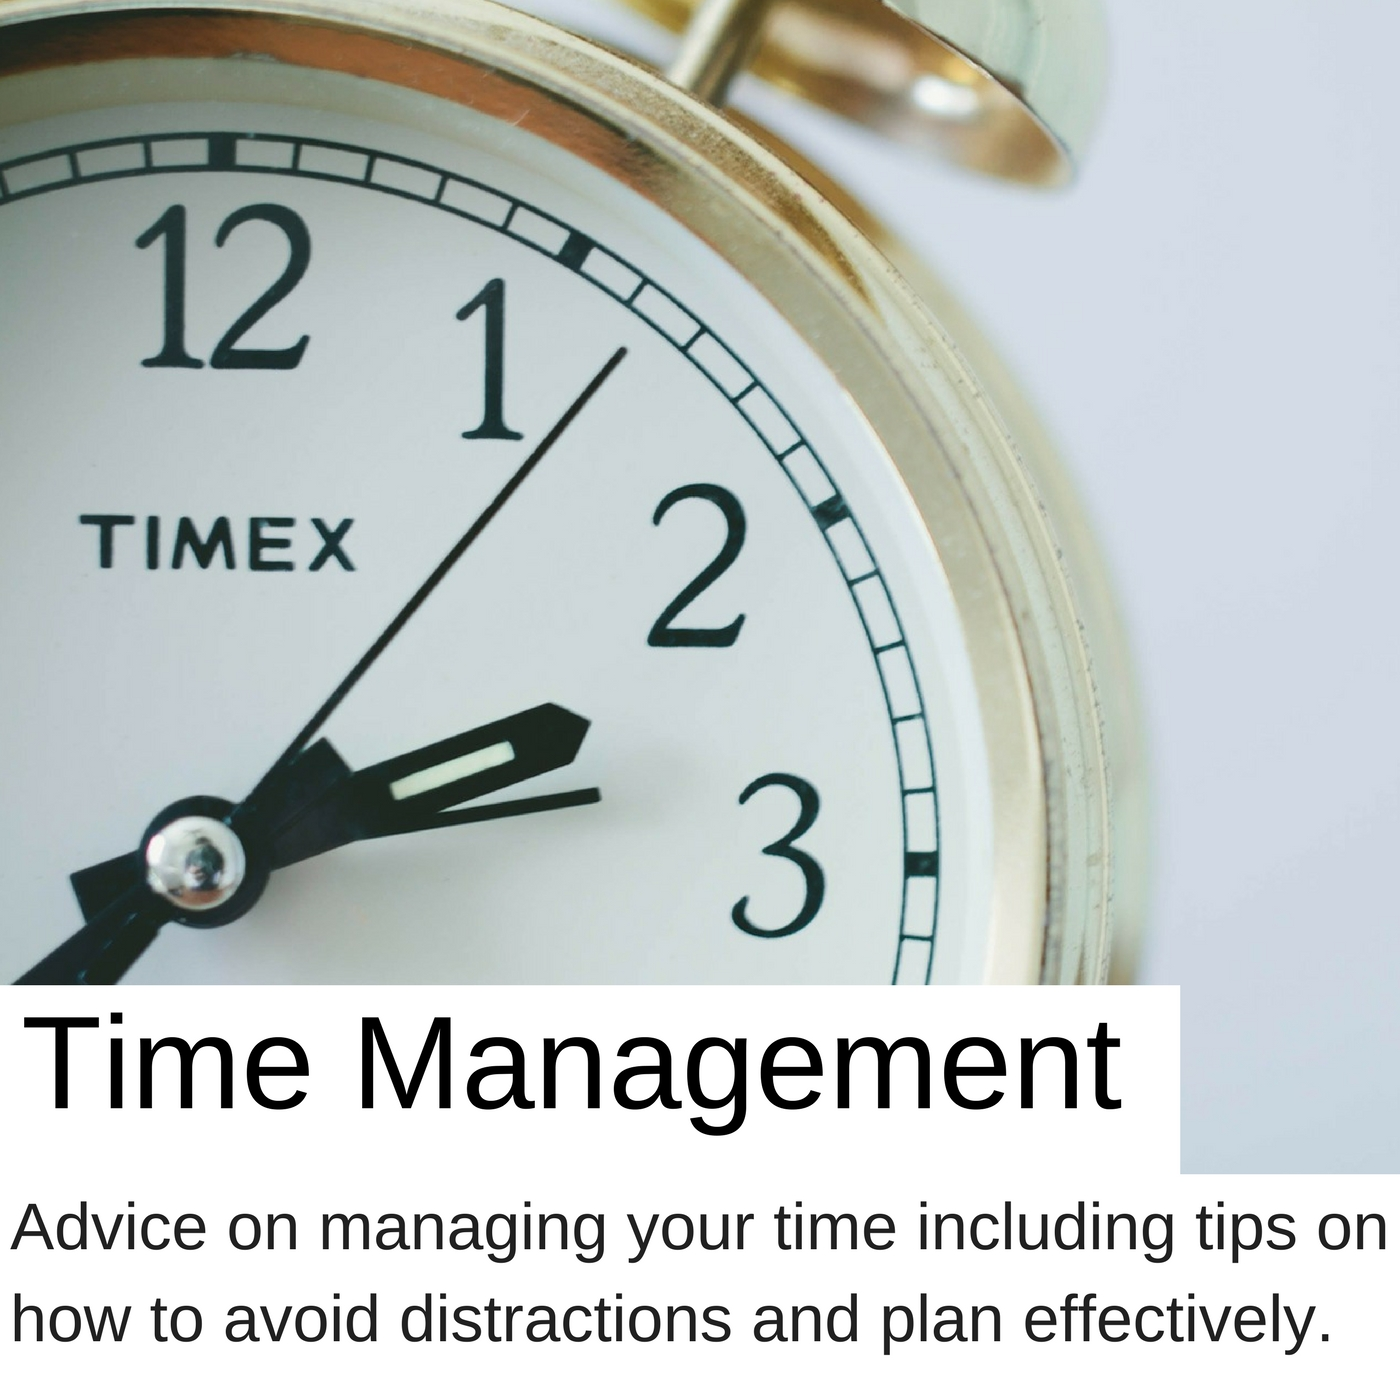 Time management advice on managing your time including tips on how to avoid distractions and plan effectively